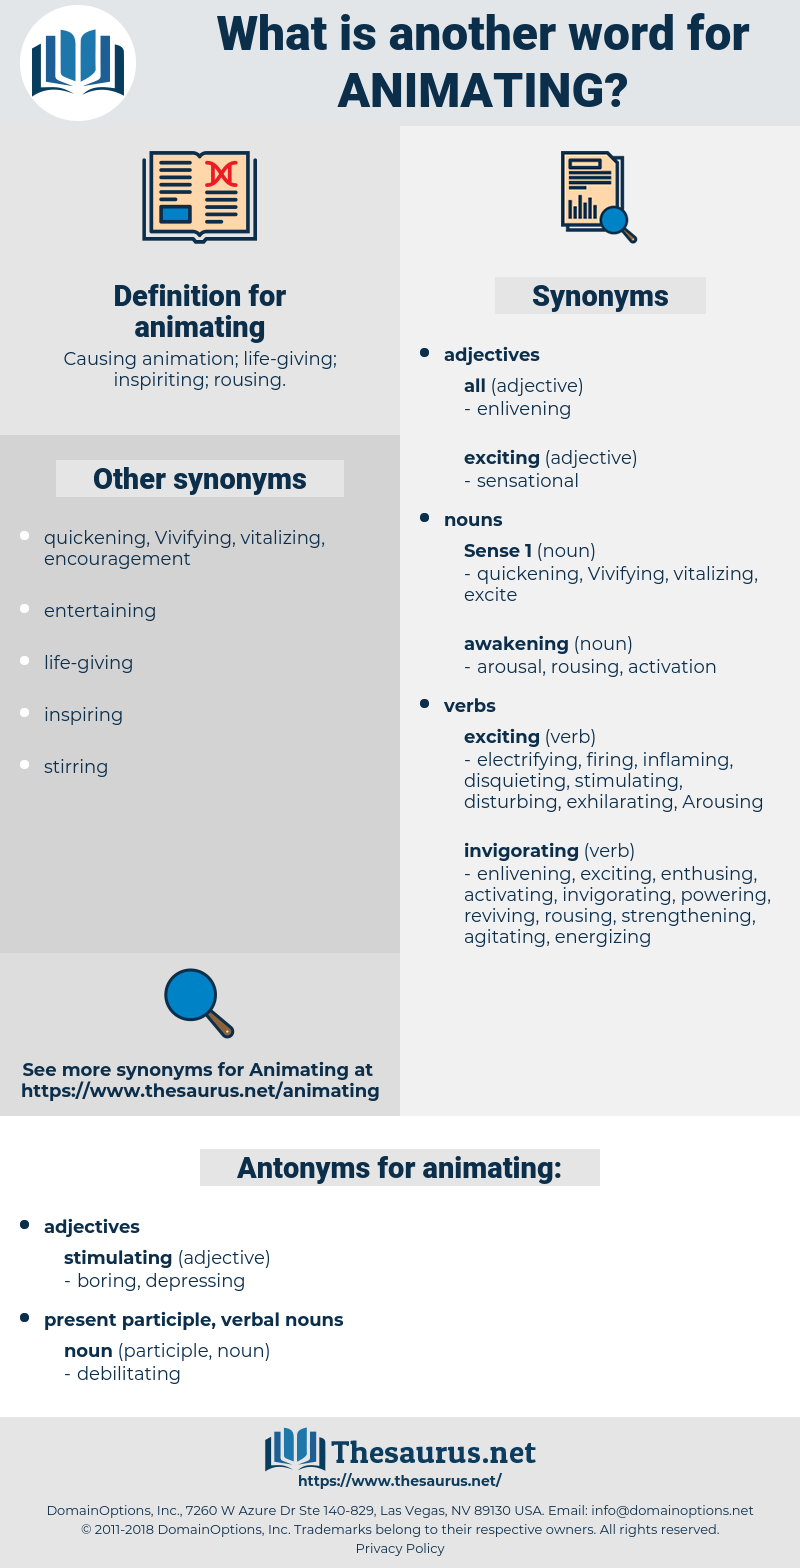 animating, synonym animating, another word for animating, words like animating, thesaurus animating